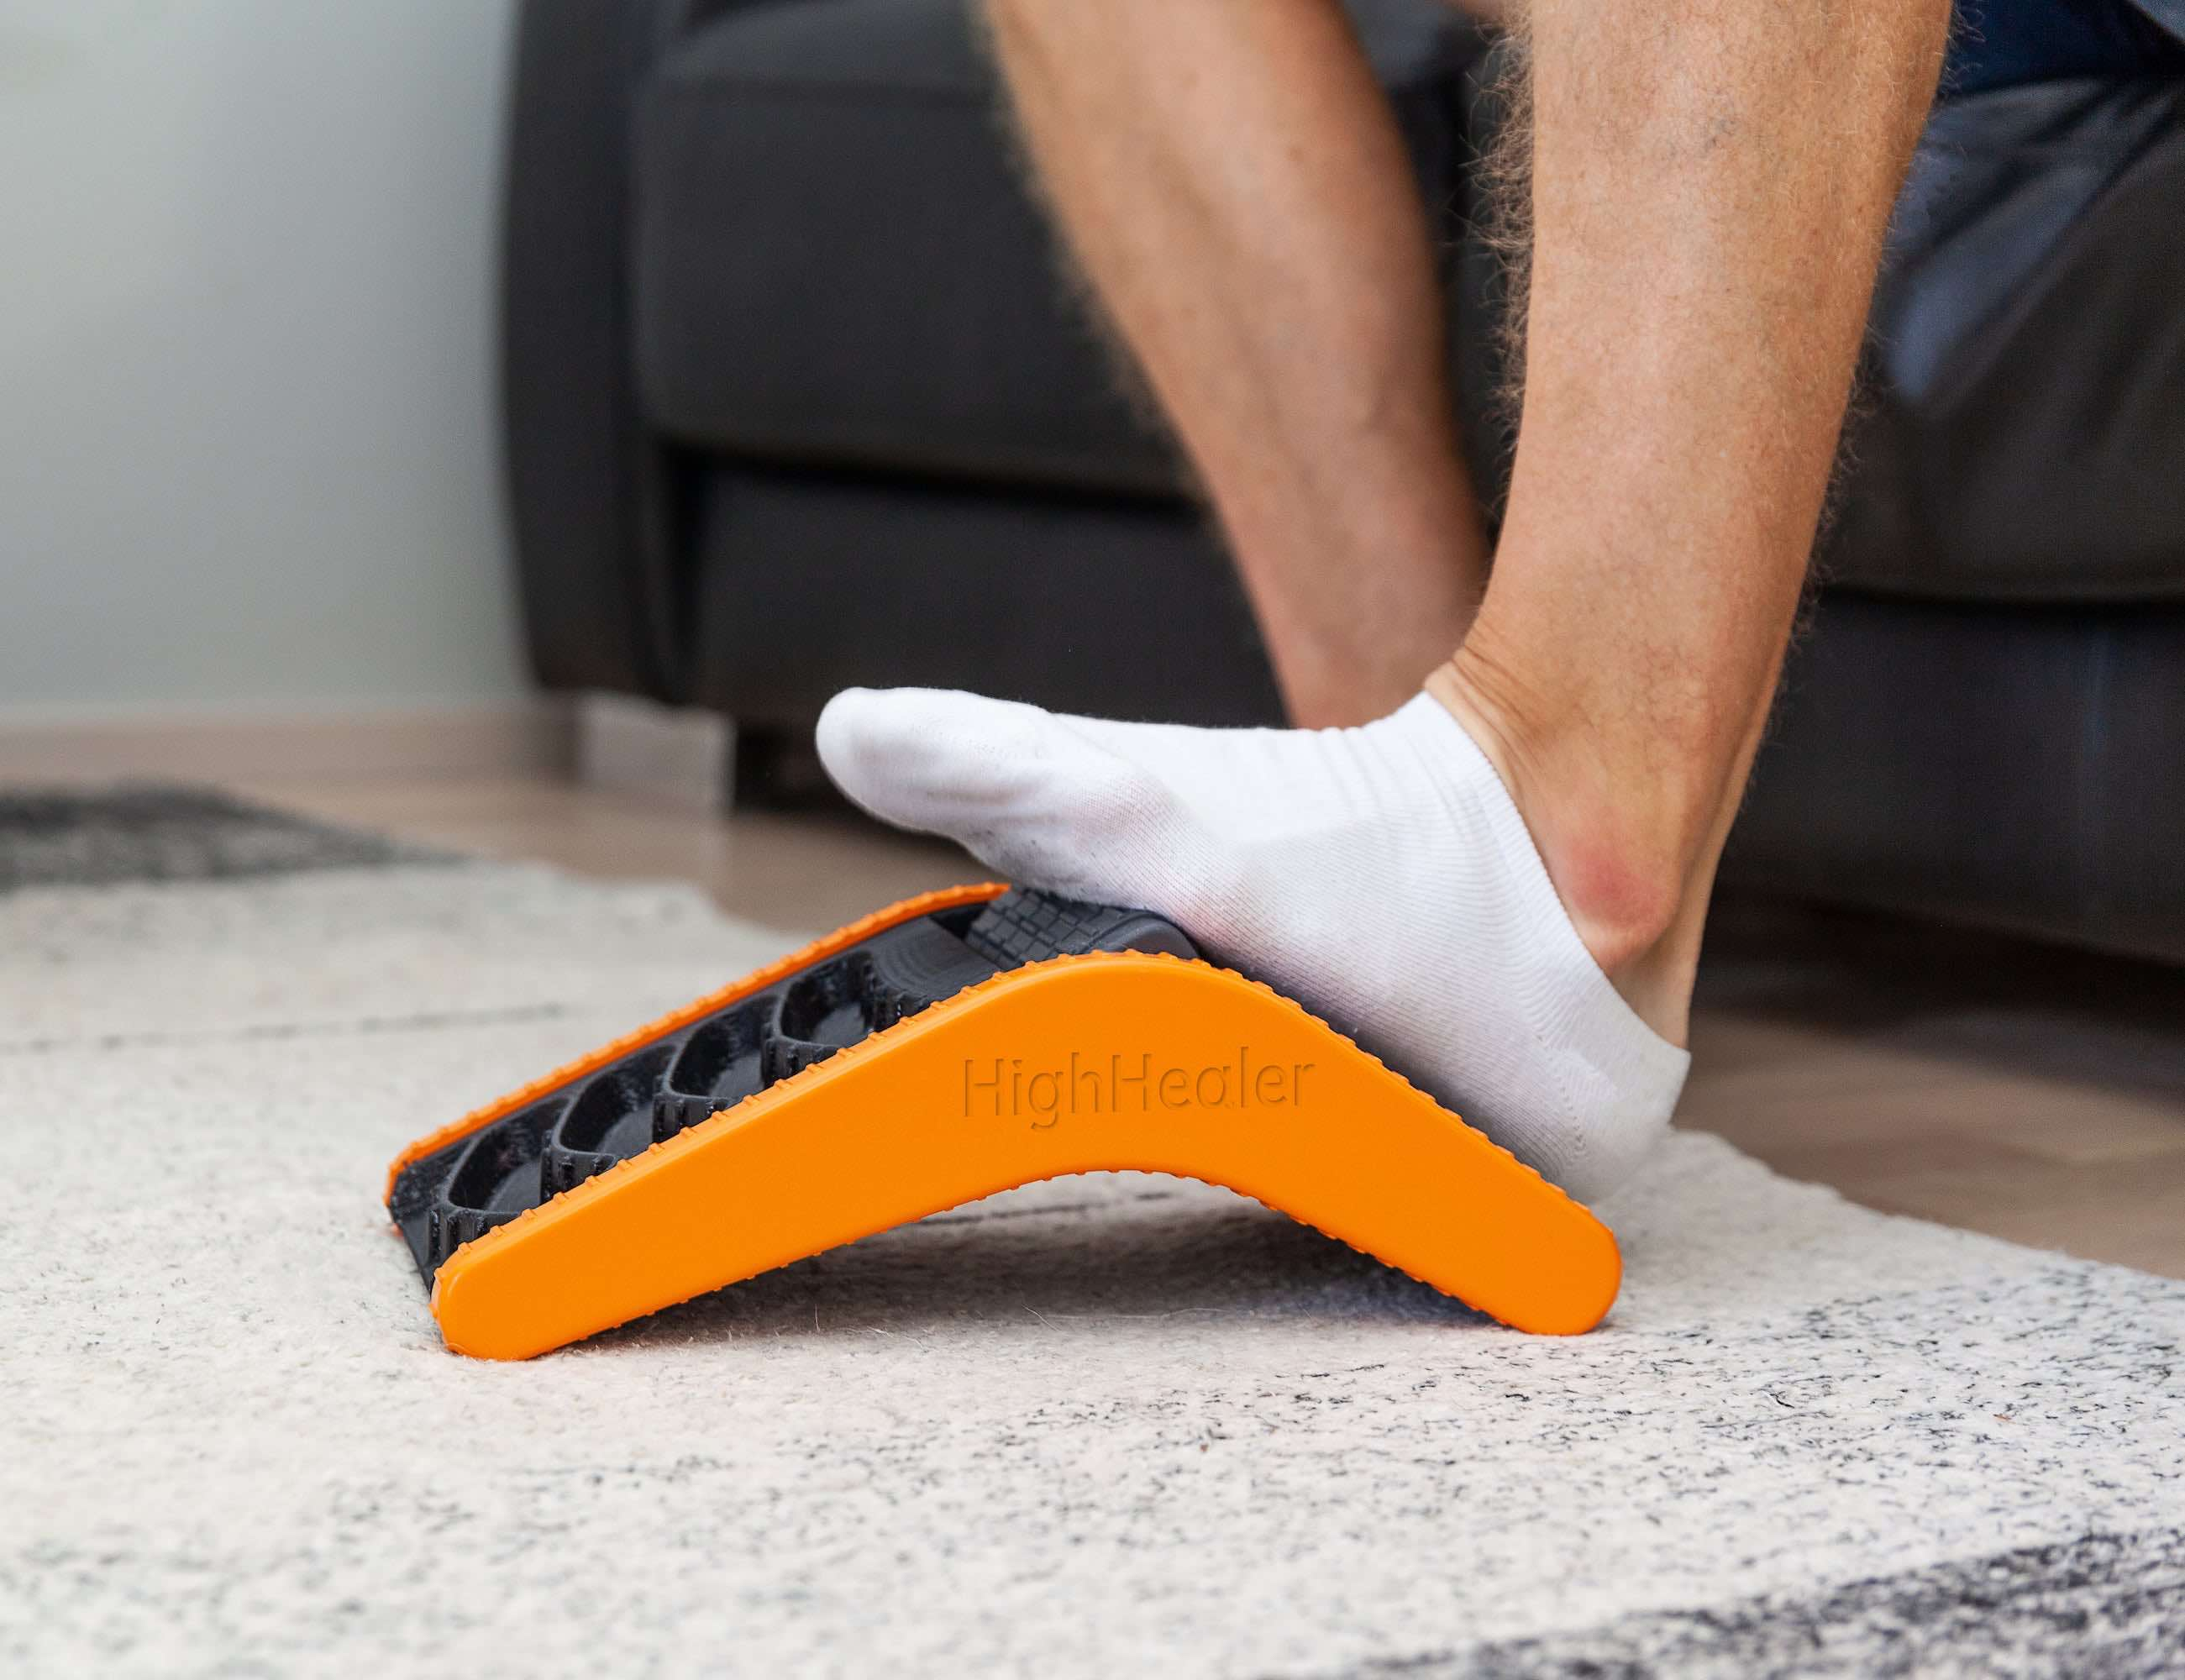 HighHealer Portable Foot Therapy Device